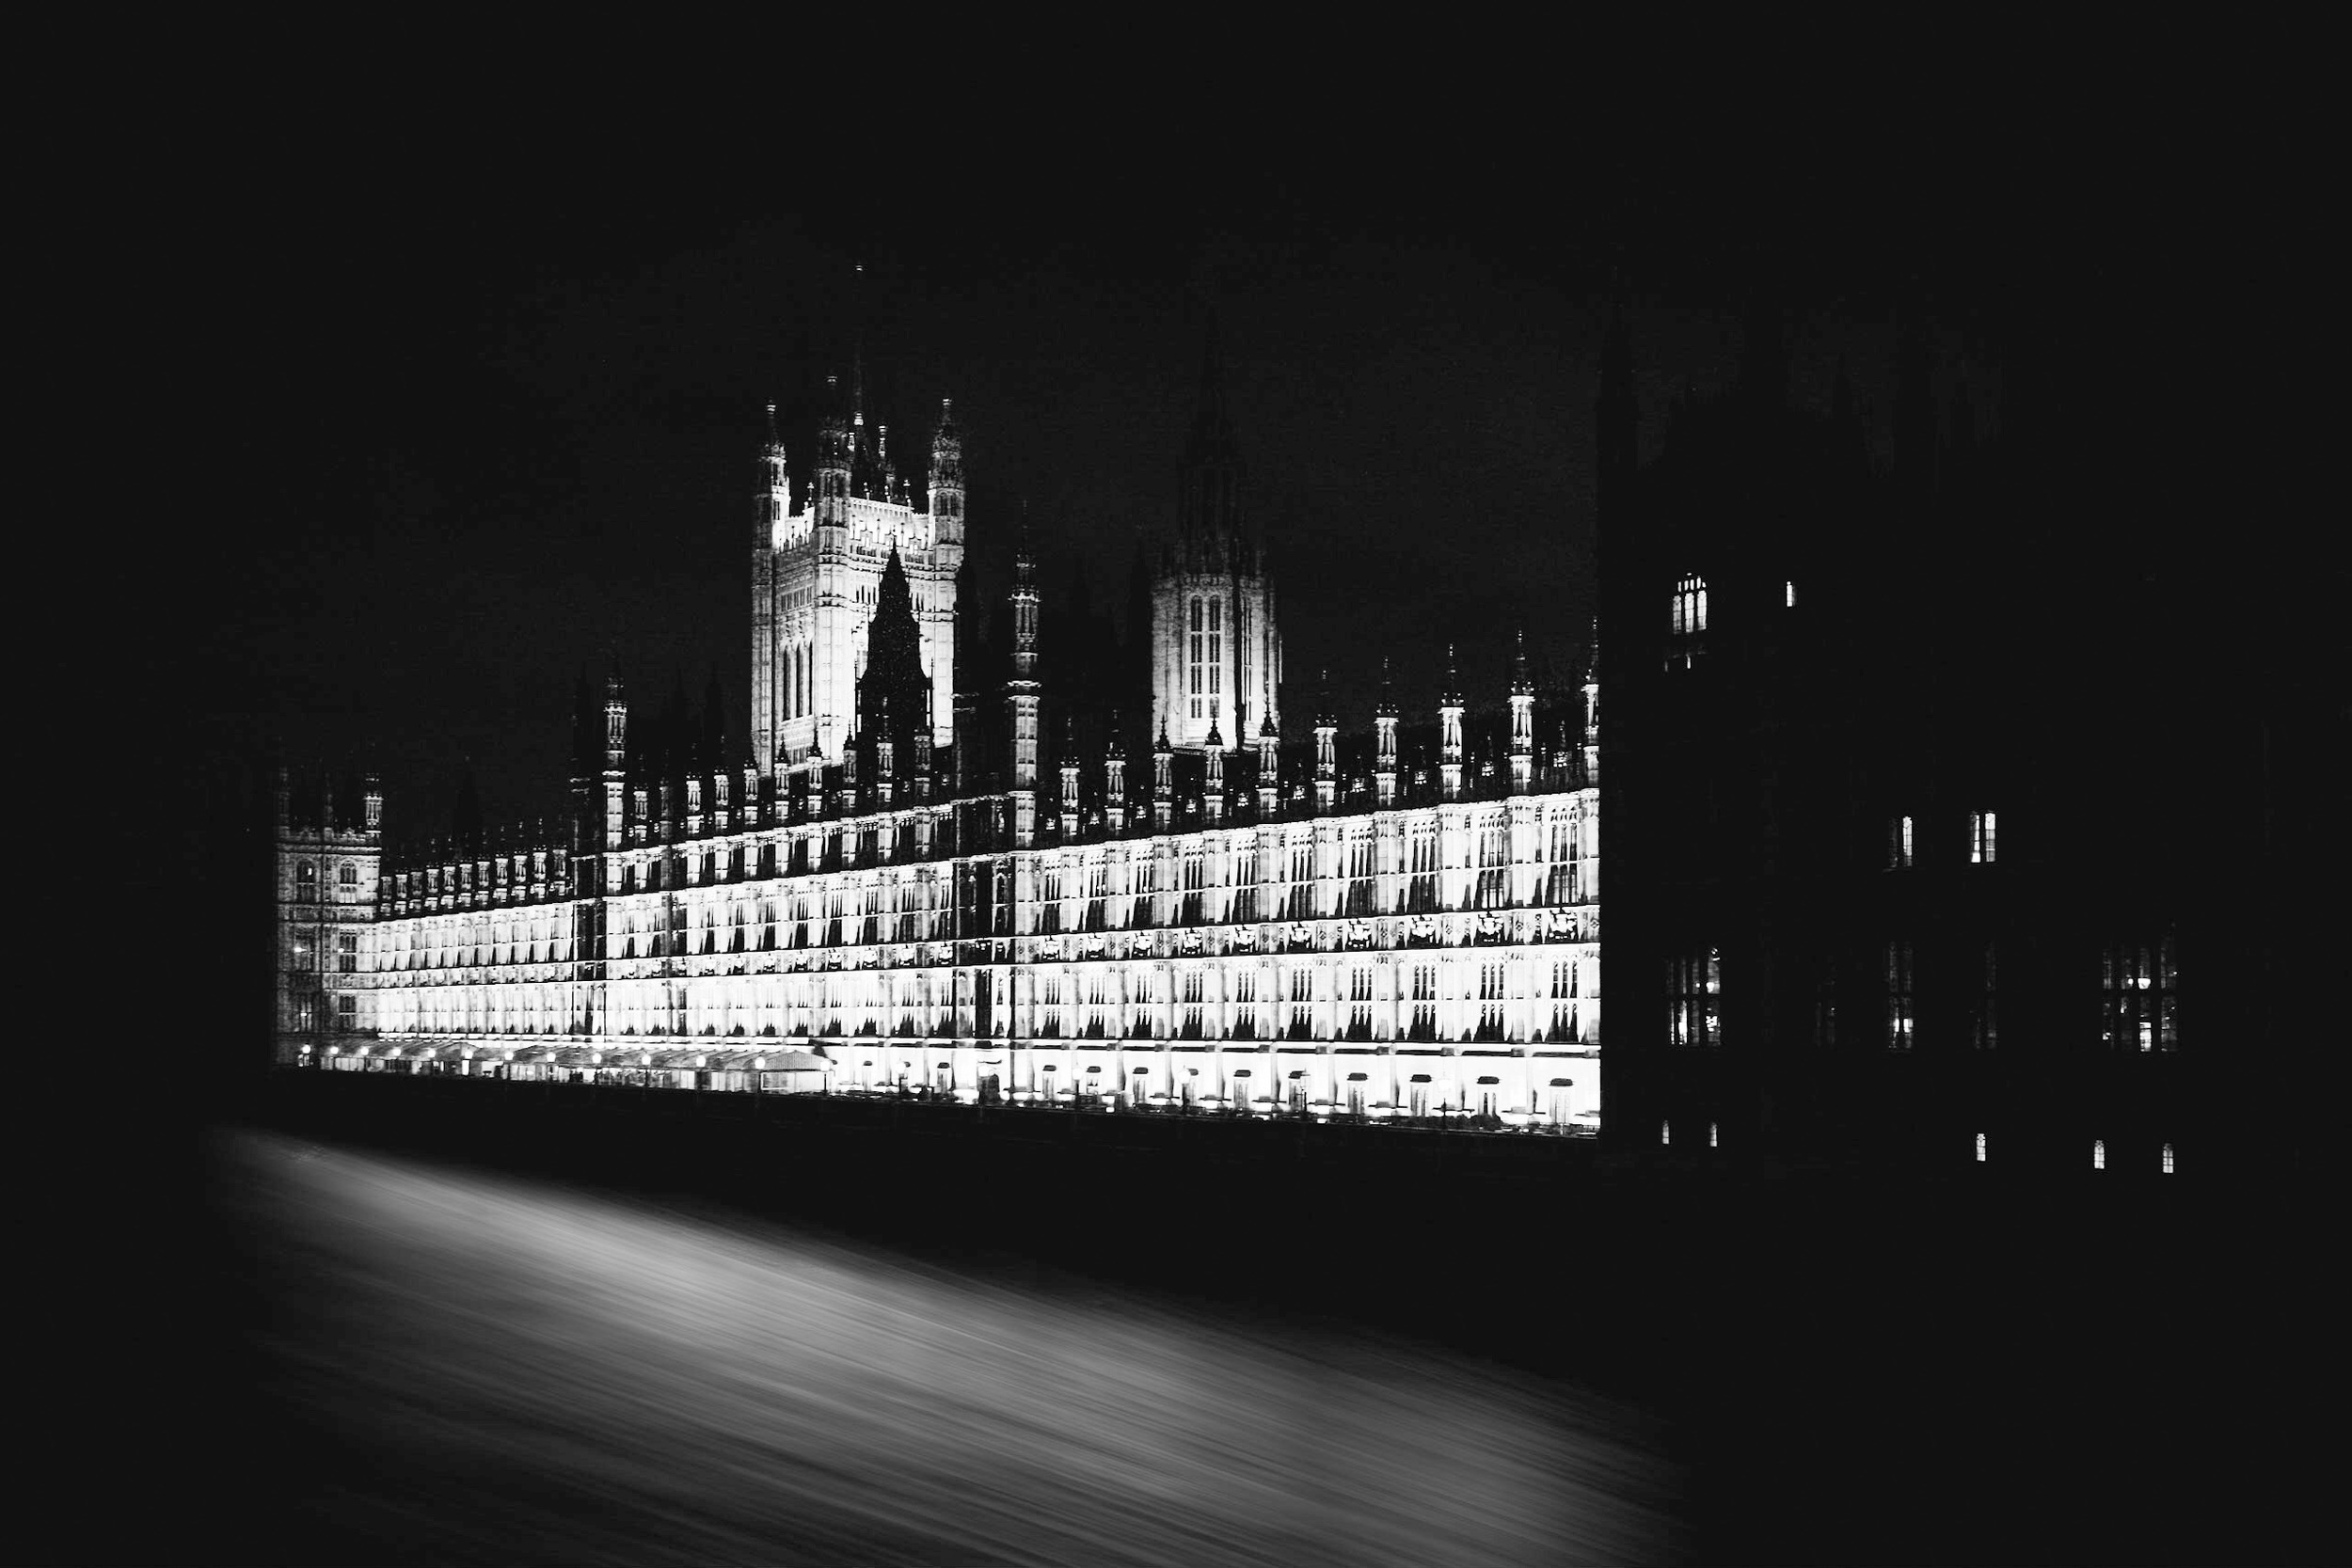 Black and white pictue of the Palace of Westminster at night by Rick McEvoy London Photographer